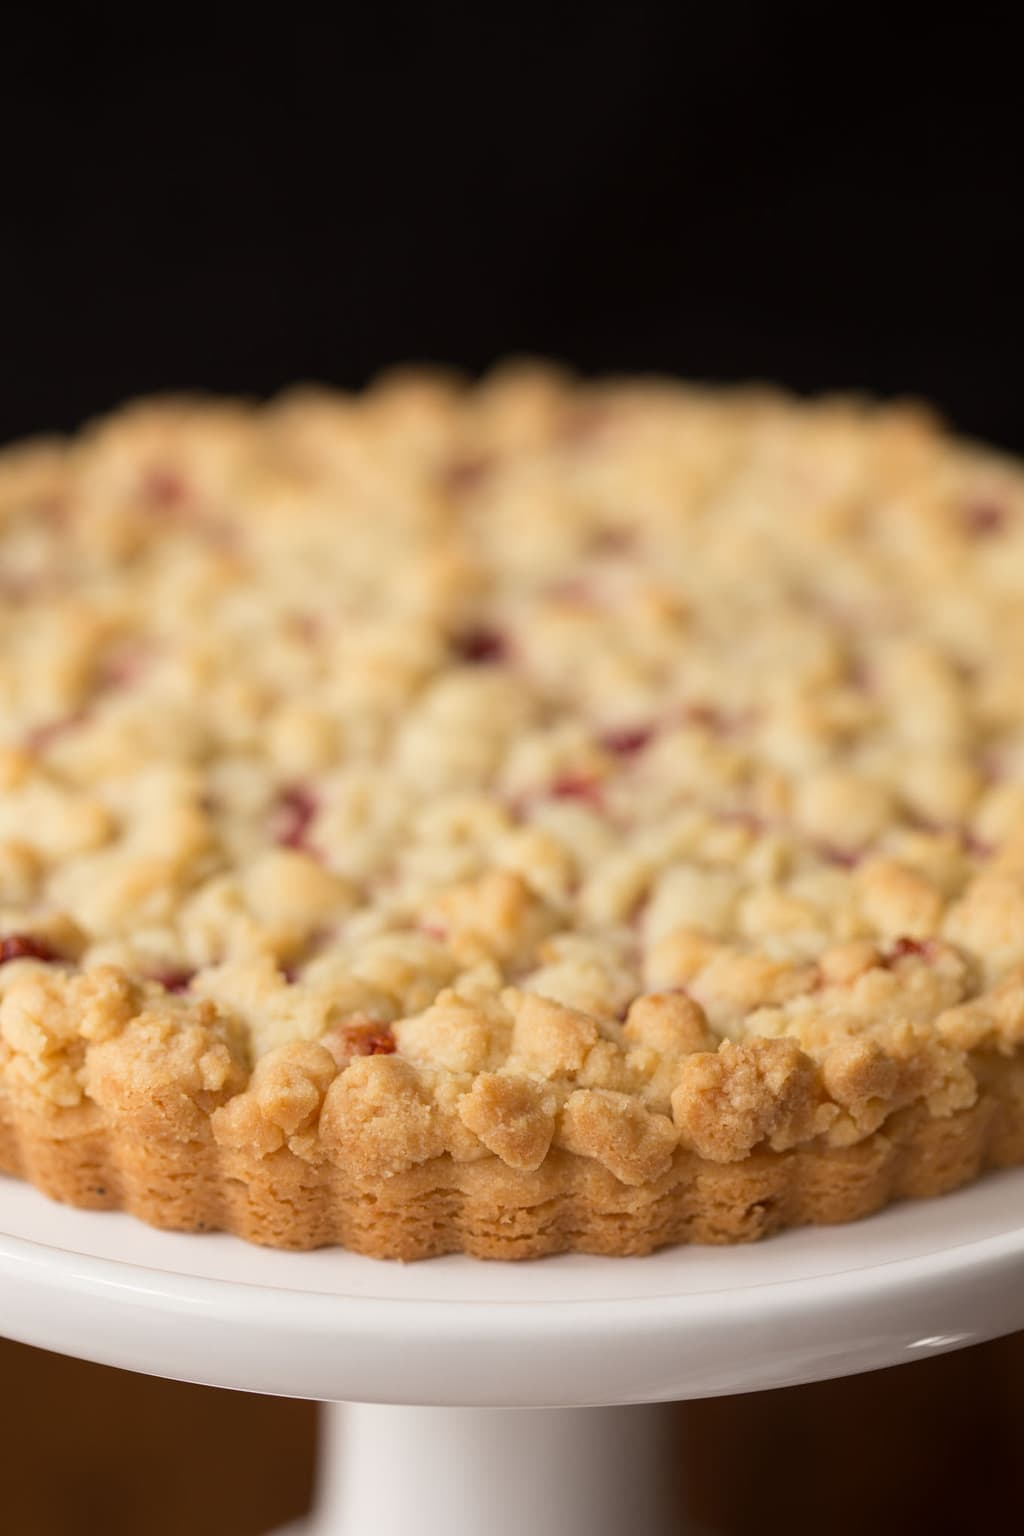 Raspberry Jam Shortbread Tart - with a layer of sweet raspberry jam nestled between the crisp, melt-in-your-mouth shortbread crust and buttery crumble topping, this simple tart might be one of the most delicious desserts you'll ever have the pleasure of meeting! thecafesucrefarine.com